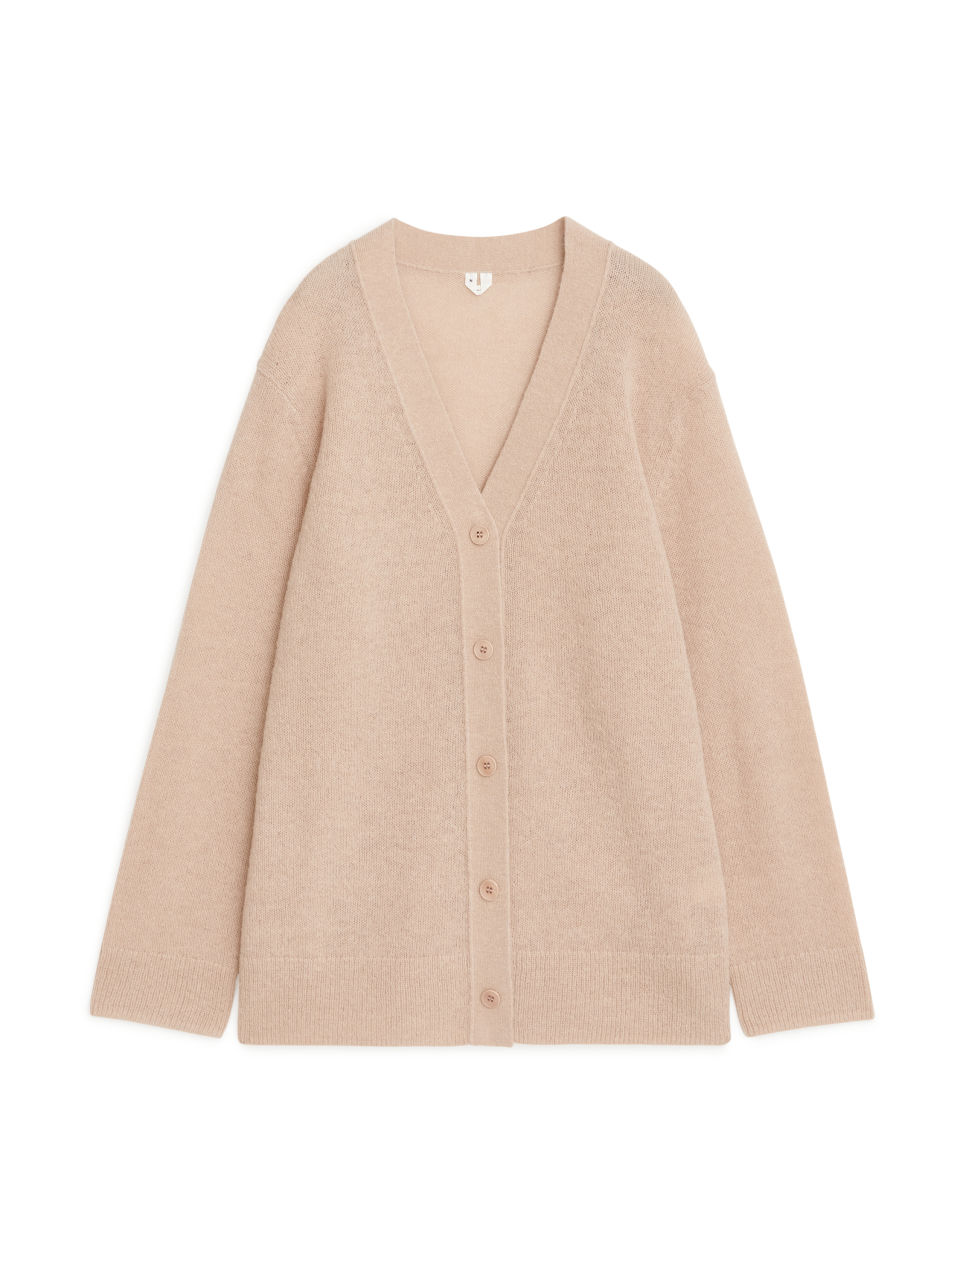 Oversized Knitted Cardigan - Beige